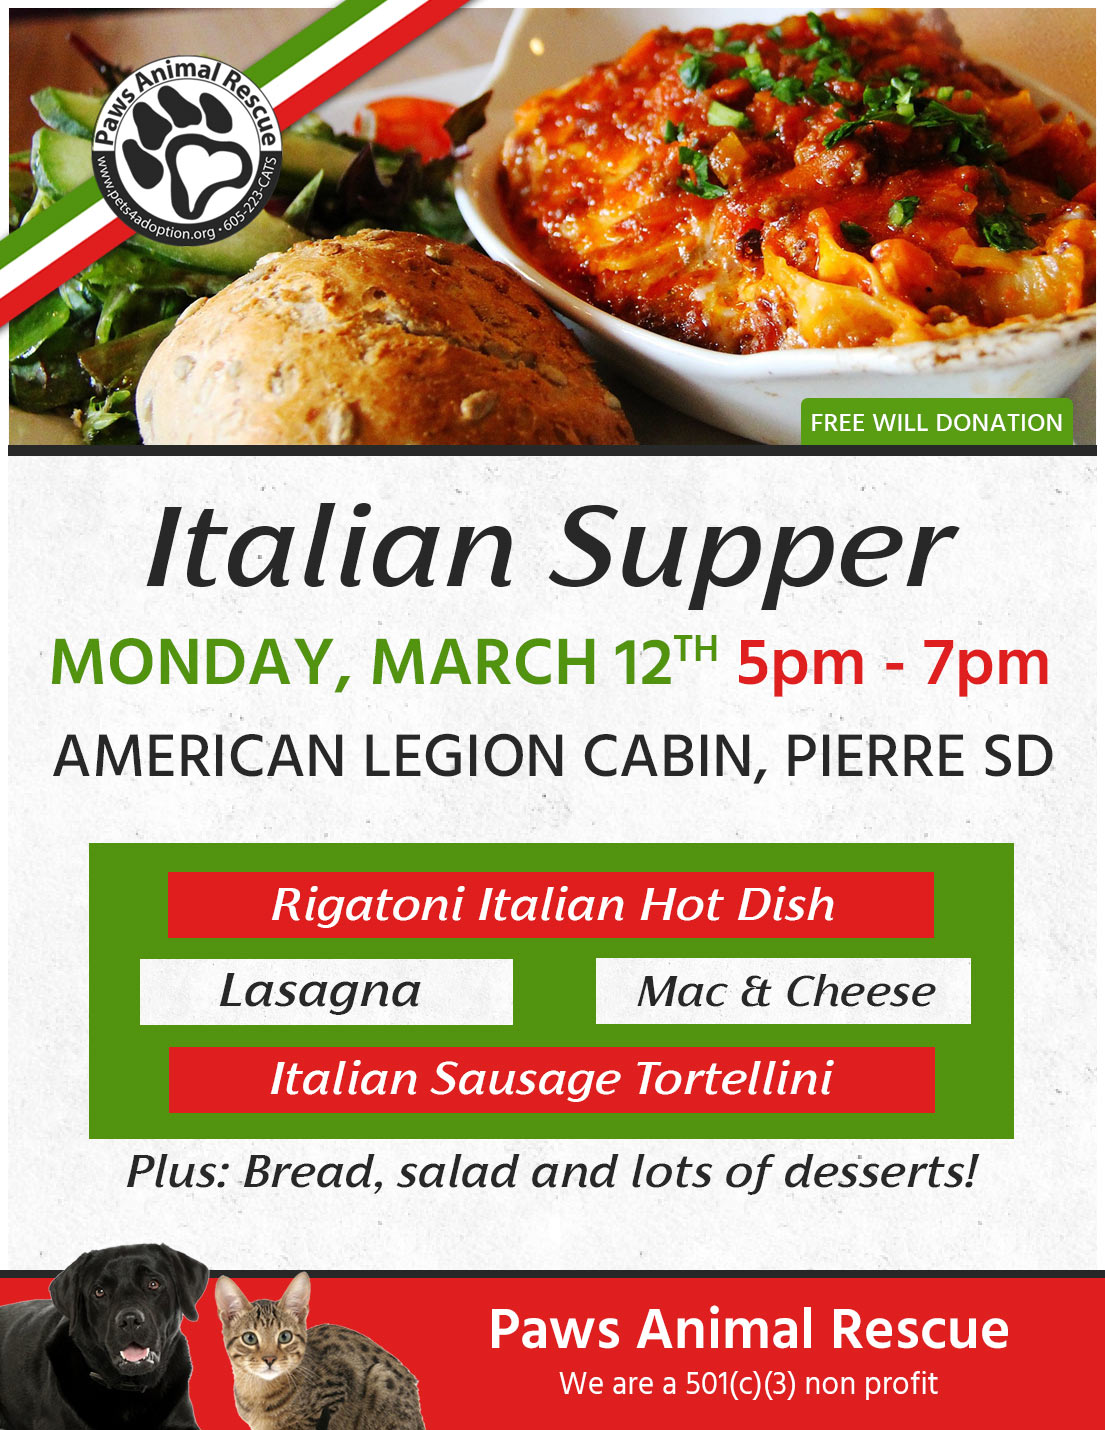 Paws Animal Rescue Italian Supper